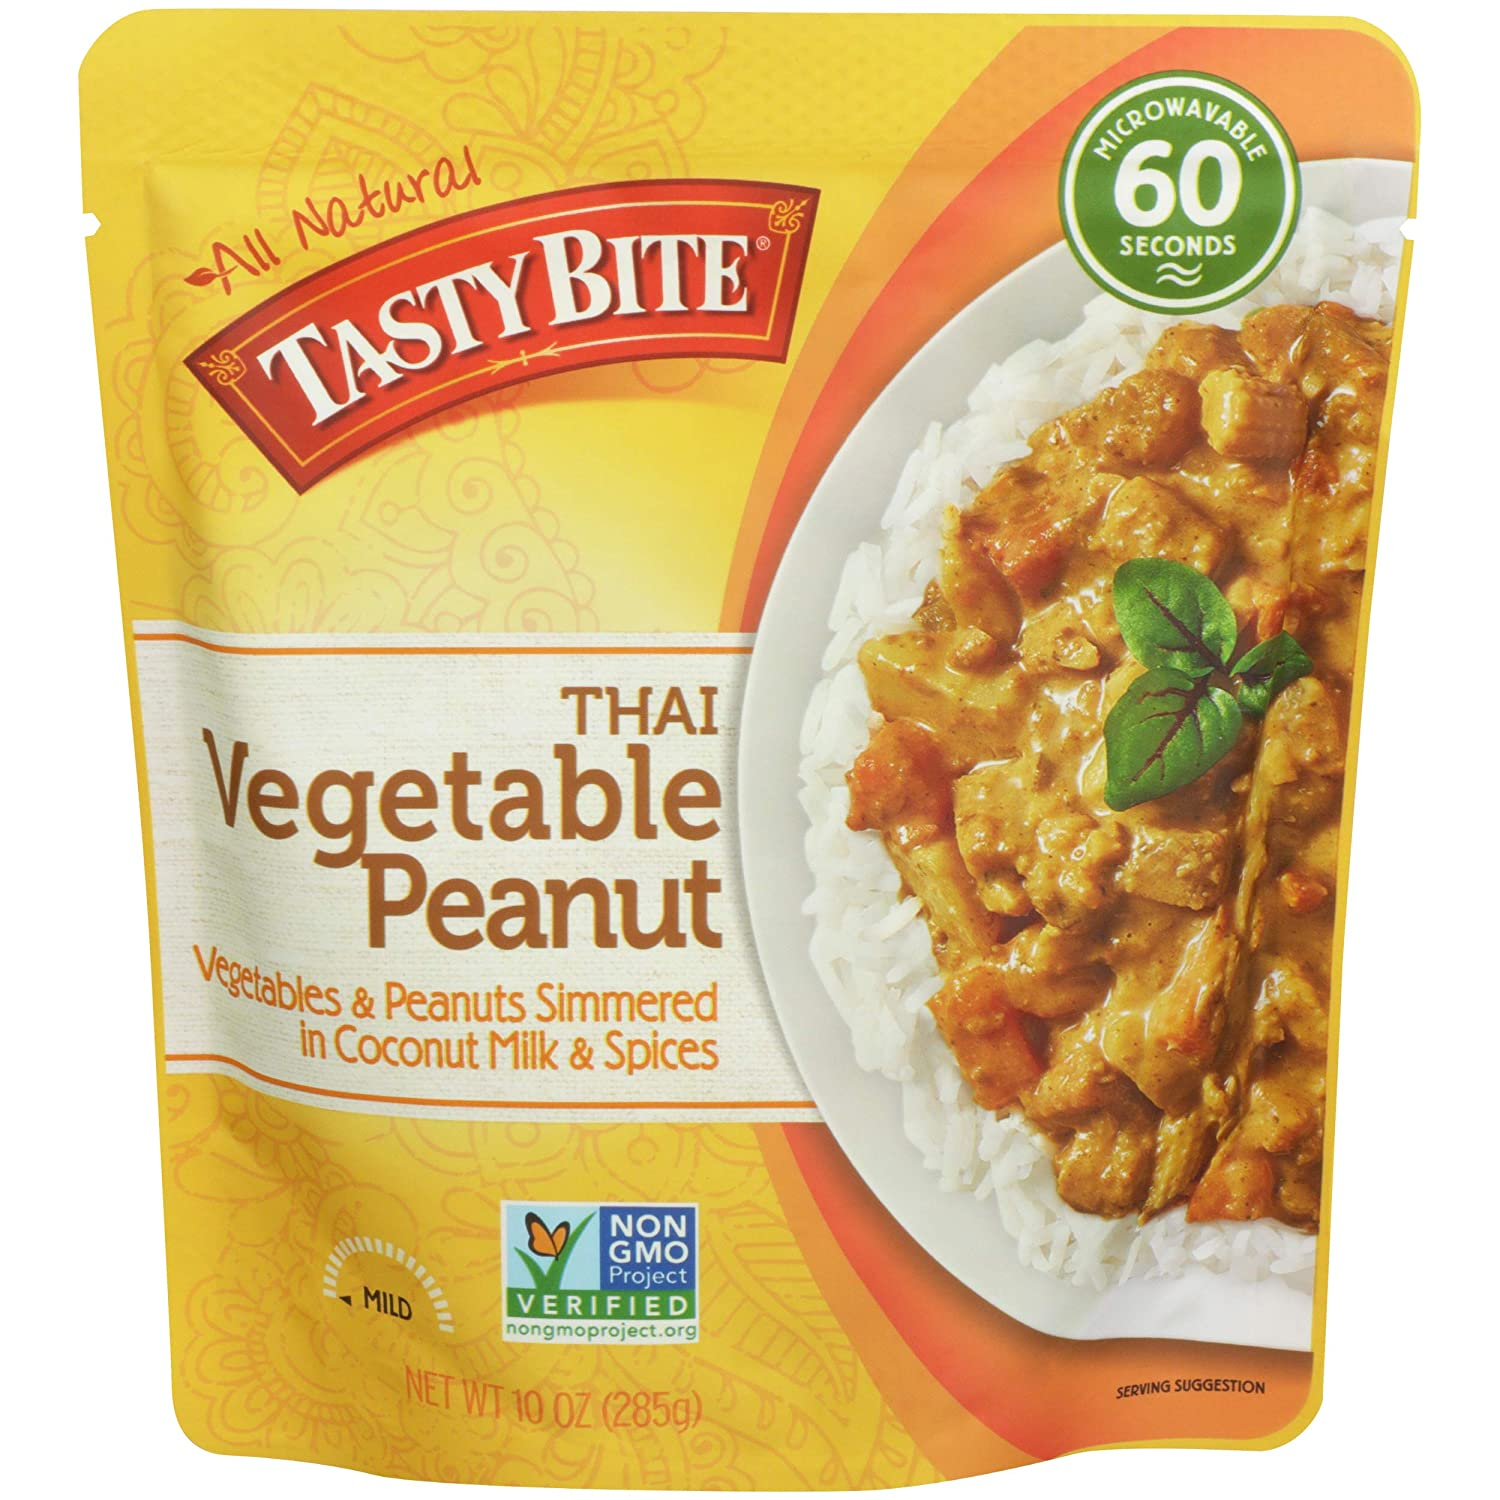 Tastybite specialty shop Entree Thai Vegetable Ounce Peanut Purchase 10